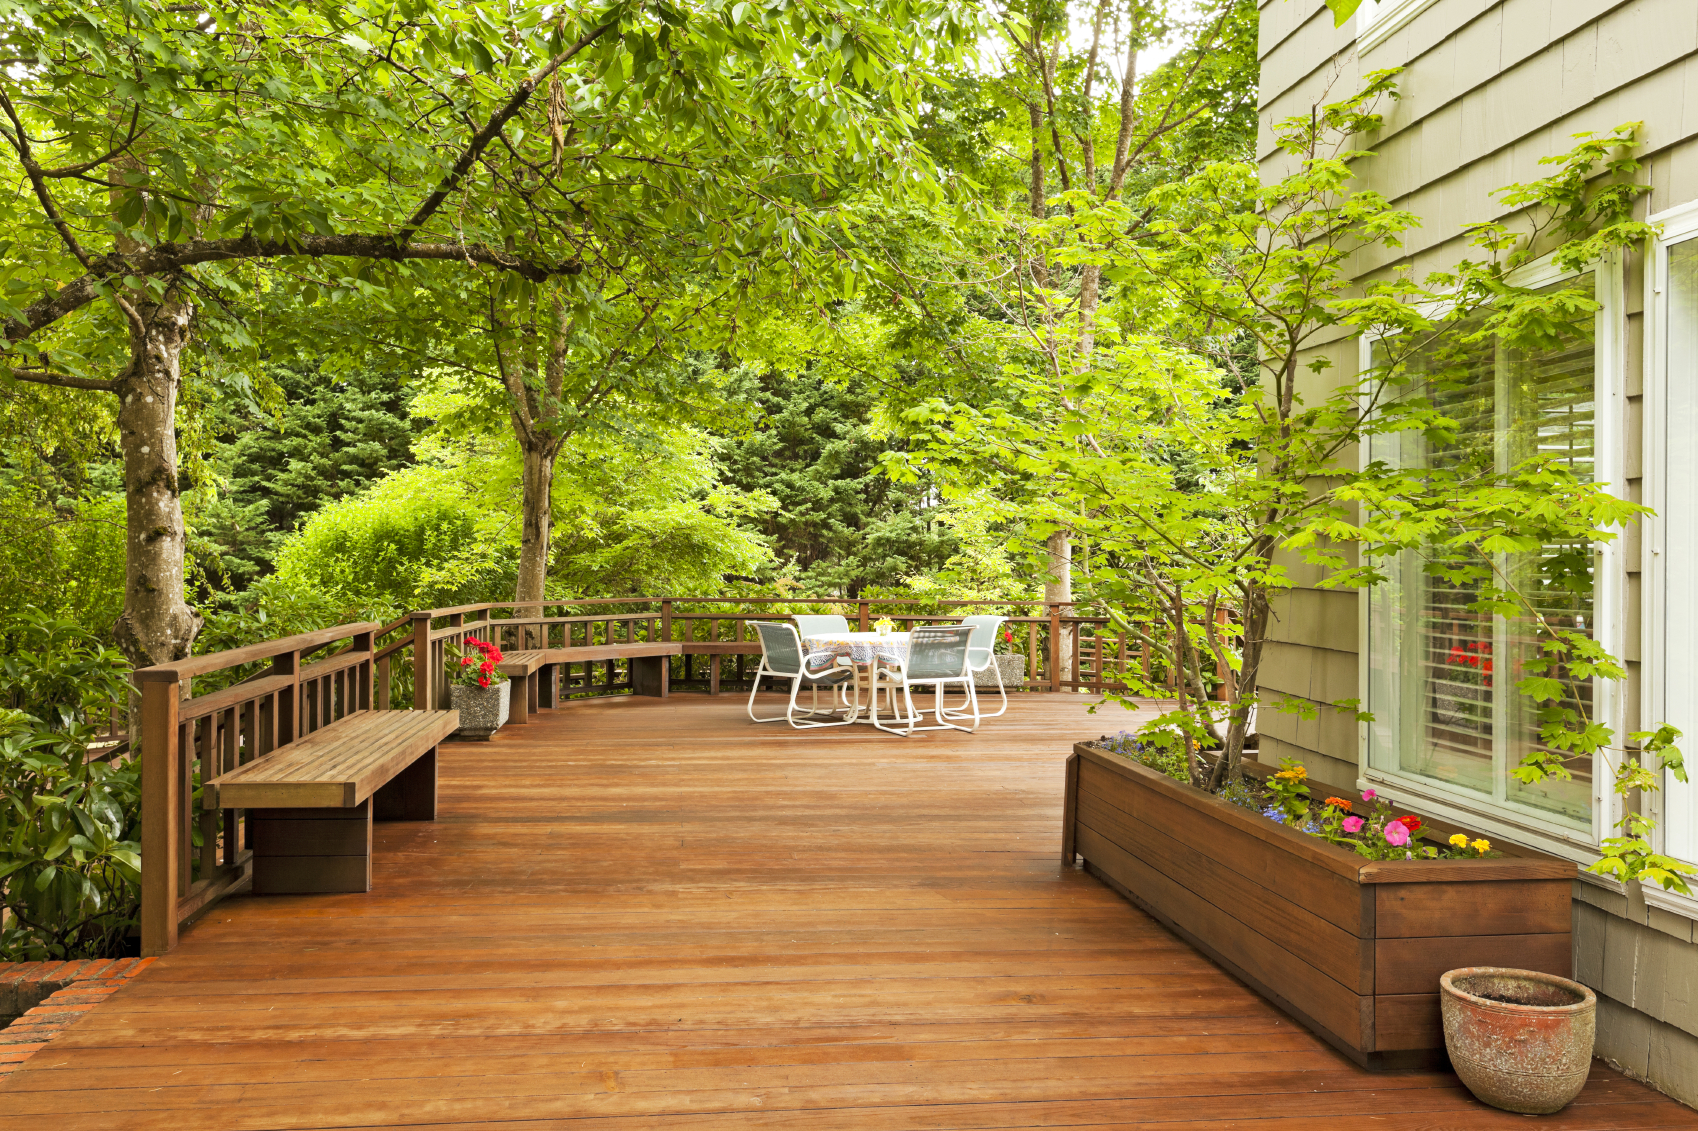 Top 3 Reasons You Should Winterize Your Wood Deck | Grillo Services